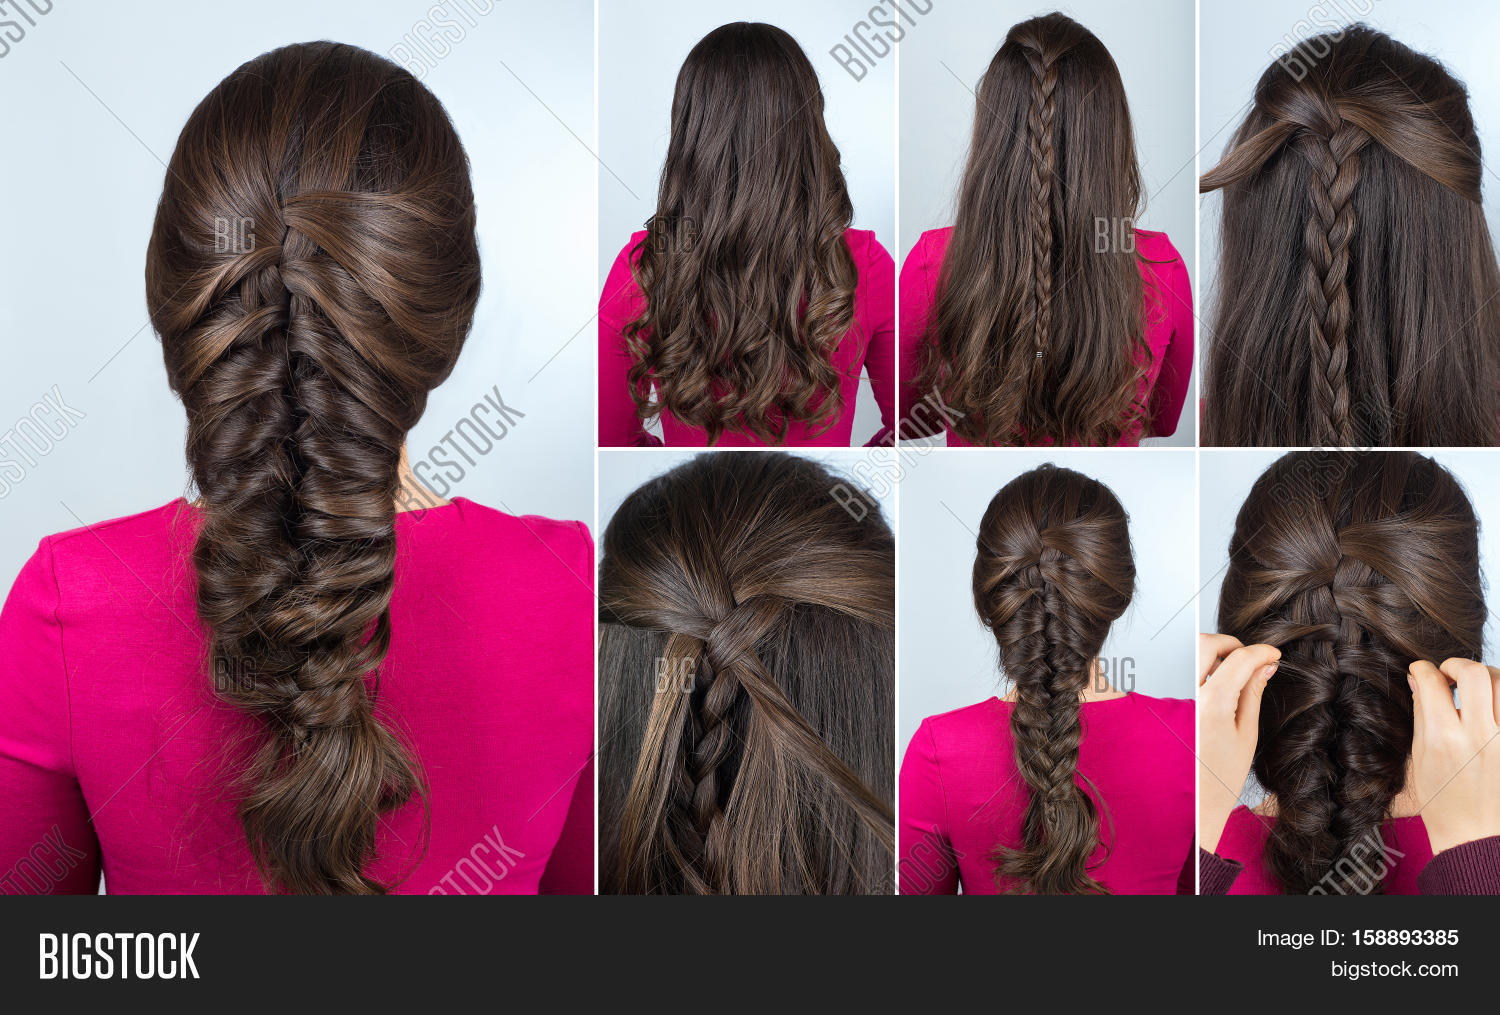 Simple Hairstyle Image & Photo (Free Trial) | Bigstock